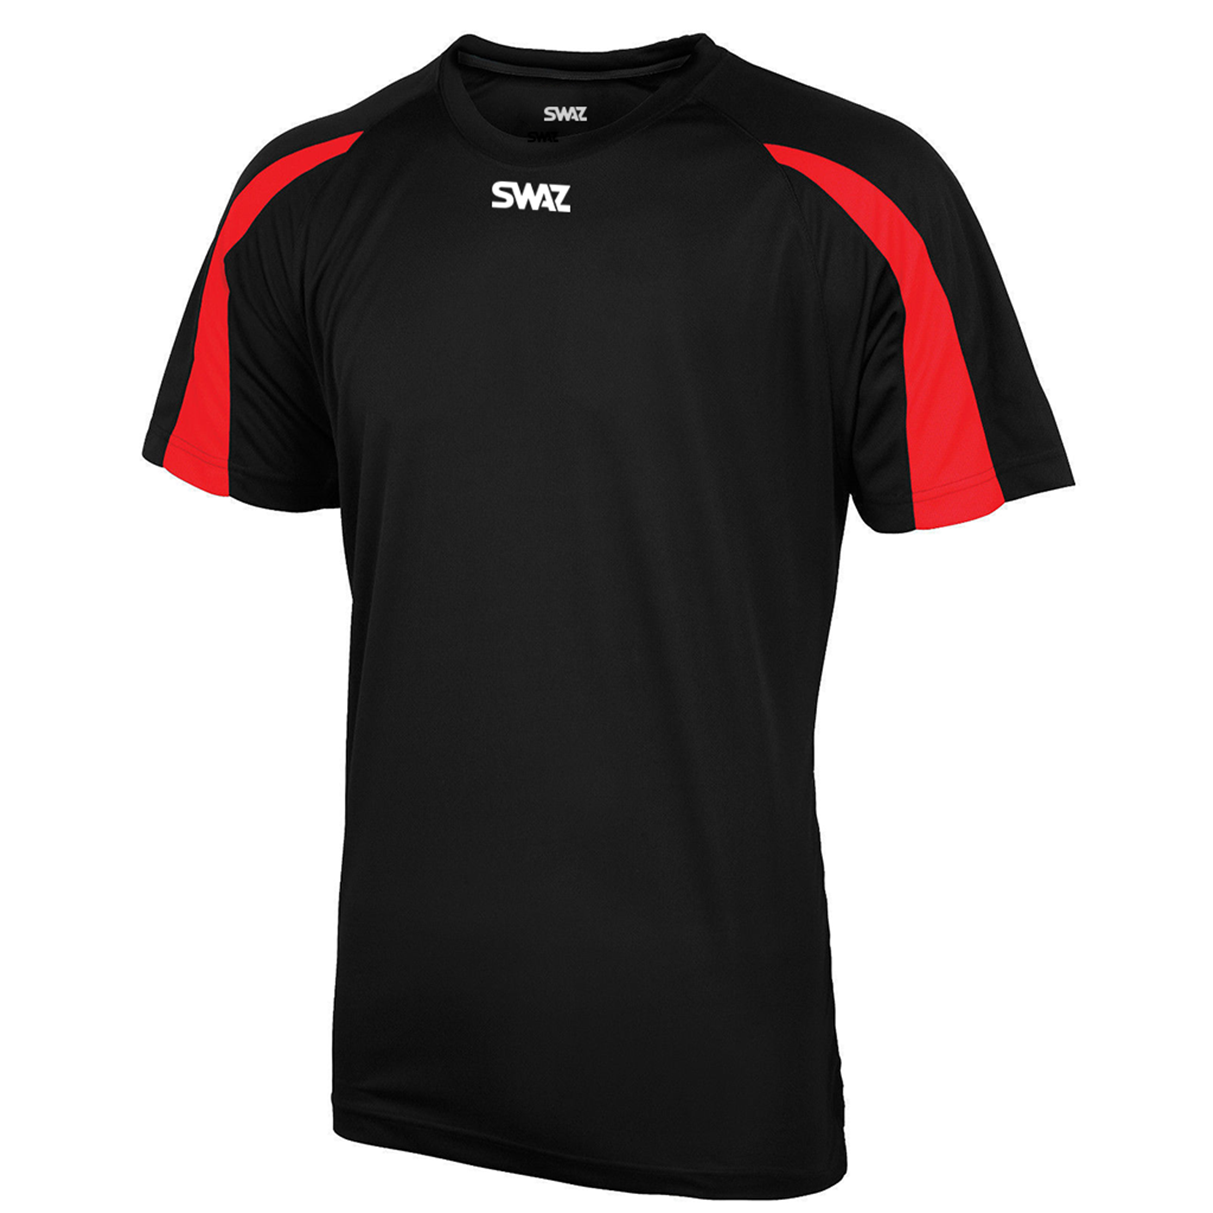 SWAZ Premier Training T-Shirt – Black/Red